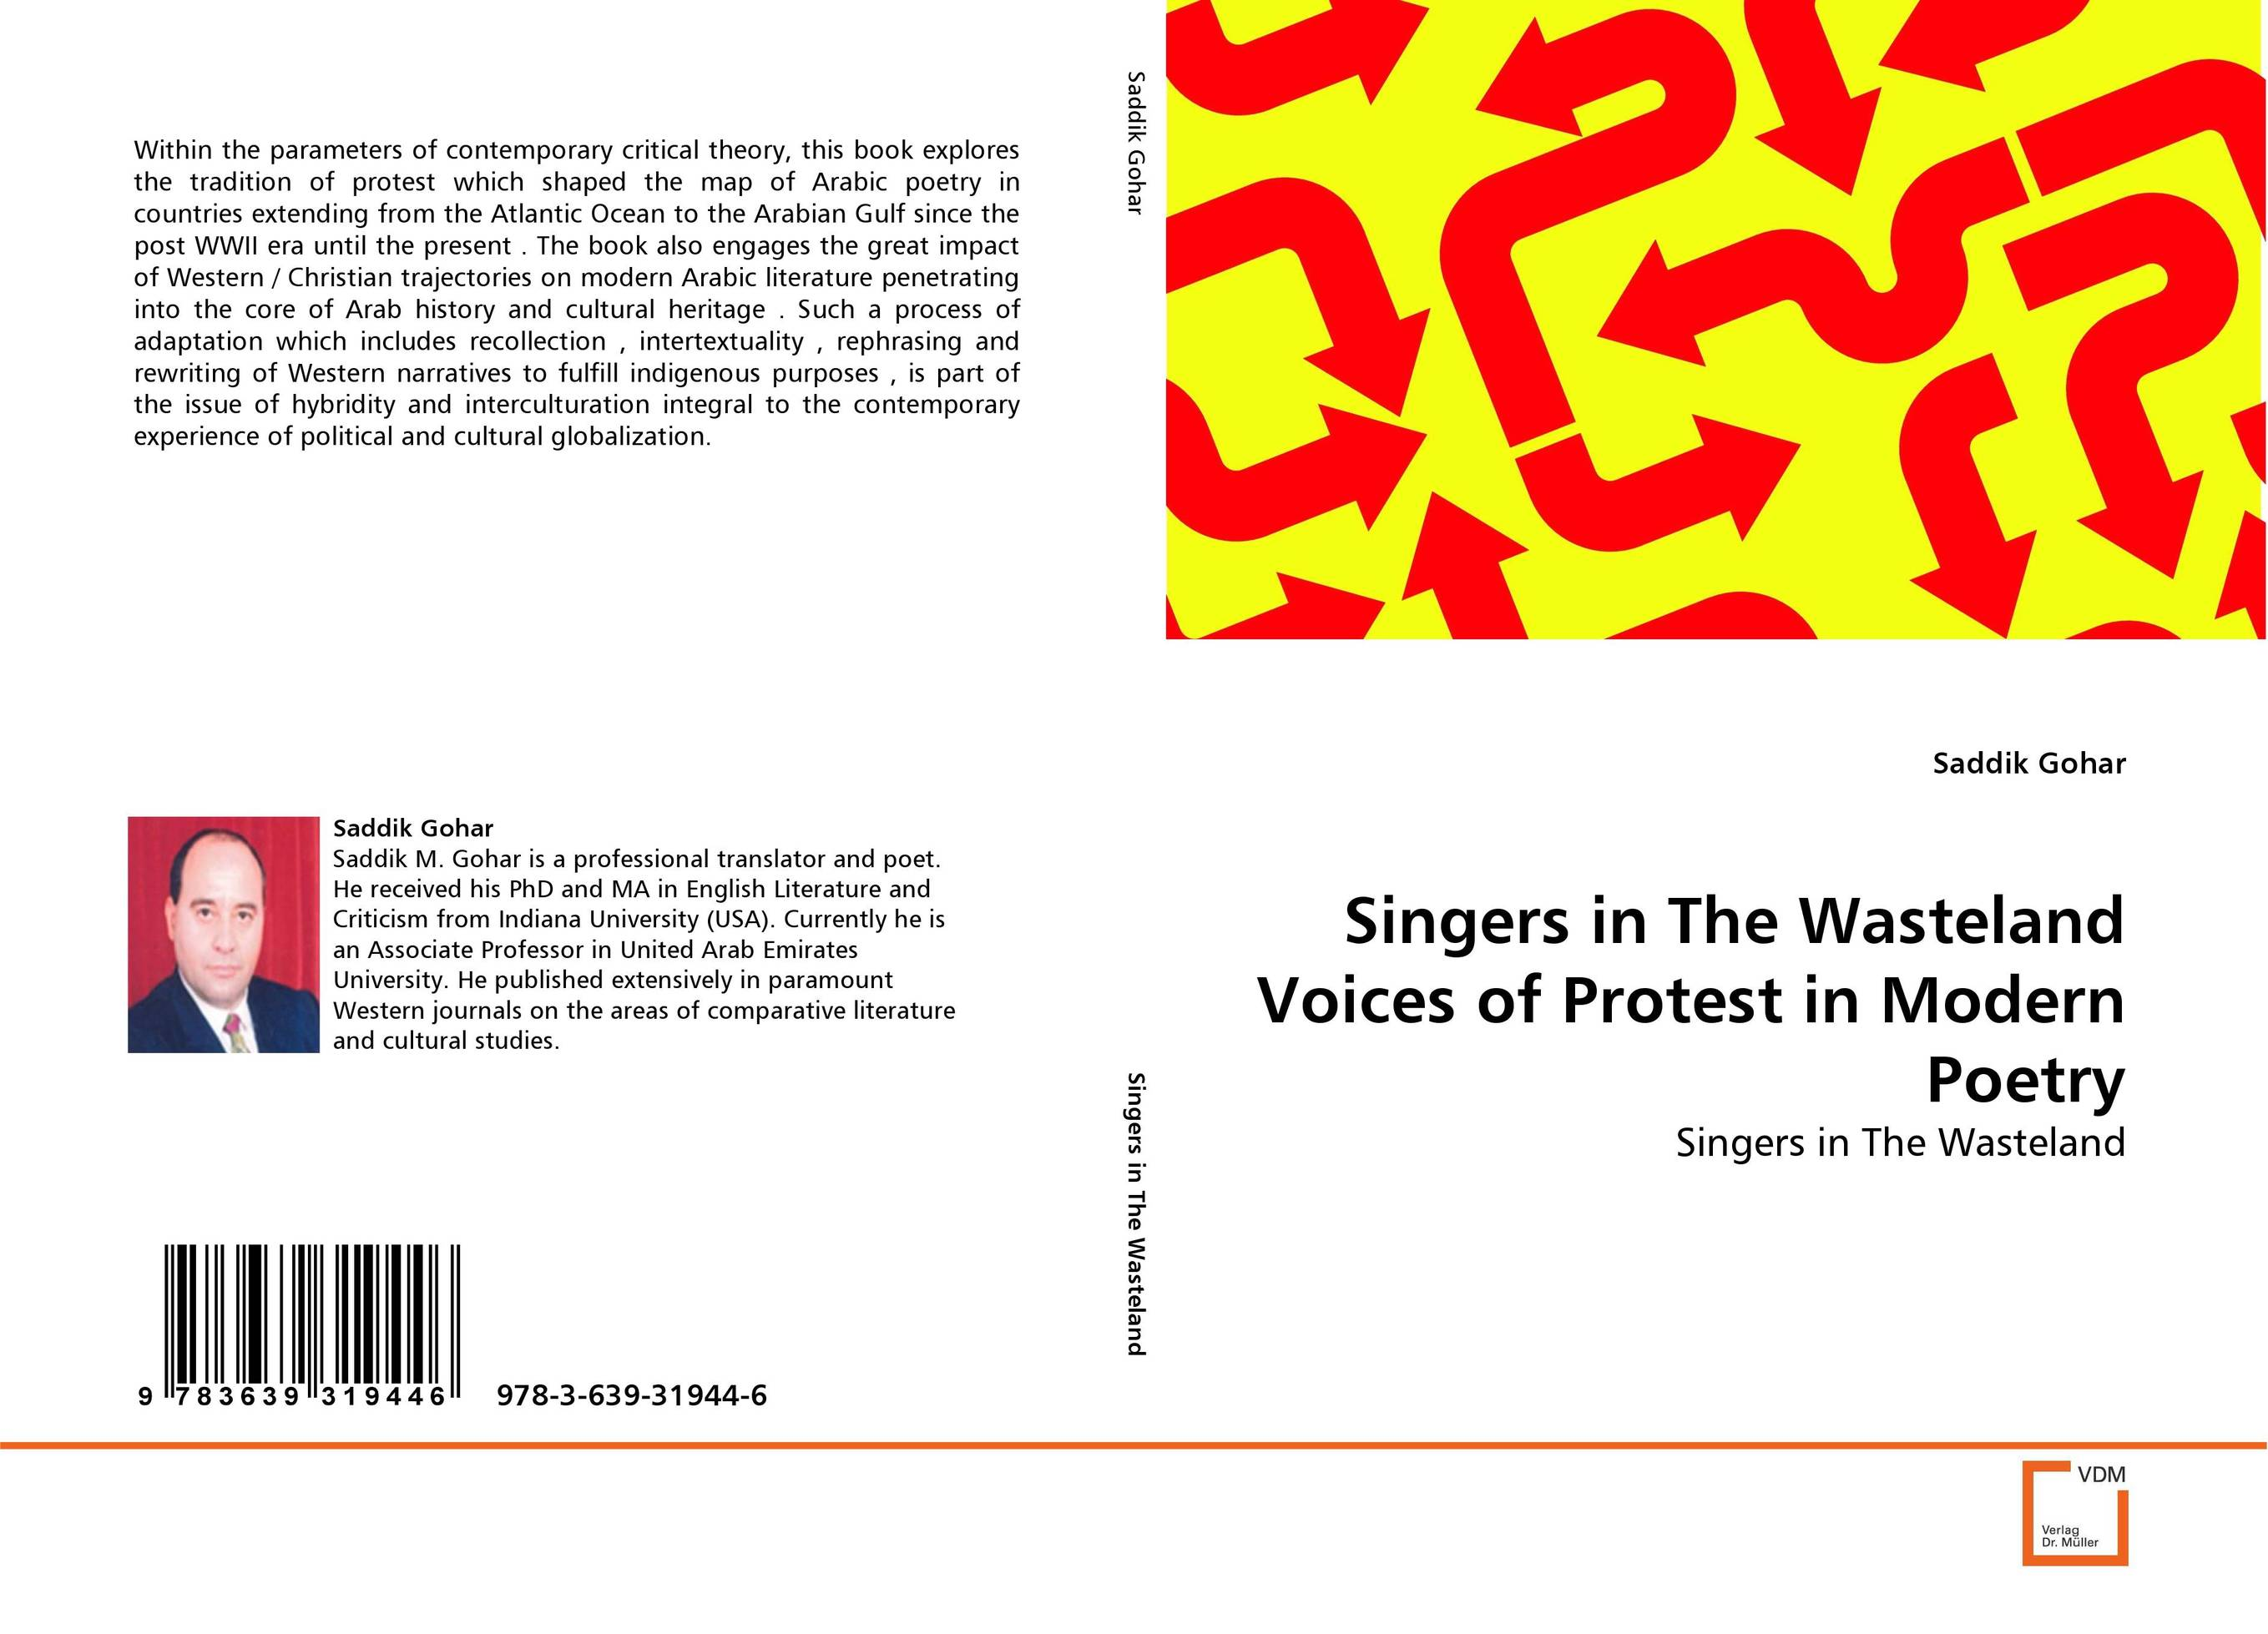 Singers in The Wasteland Voices of Protest in Modern Poetry promoting social change in the arab gulf